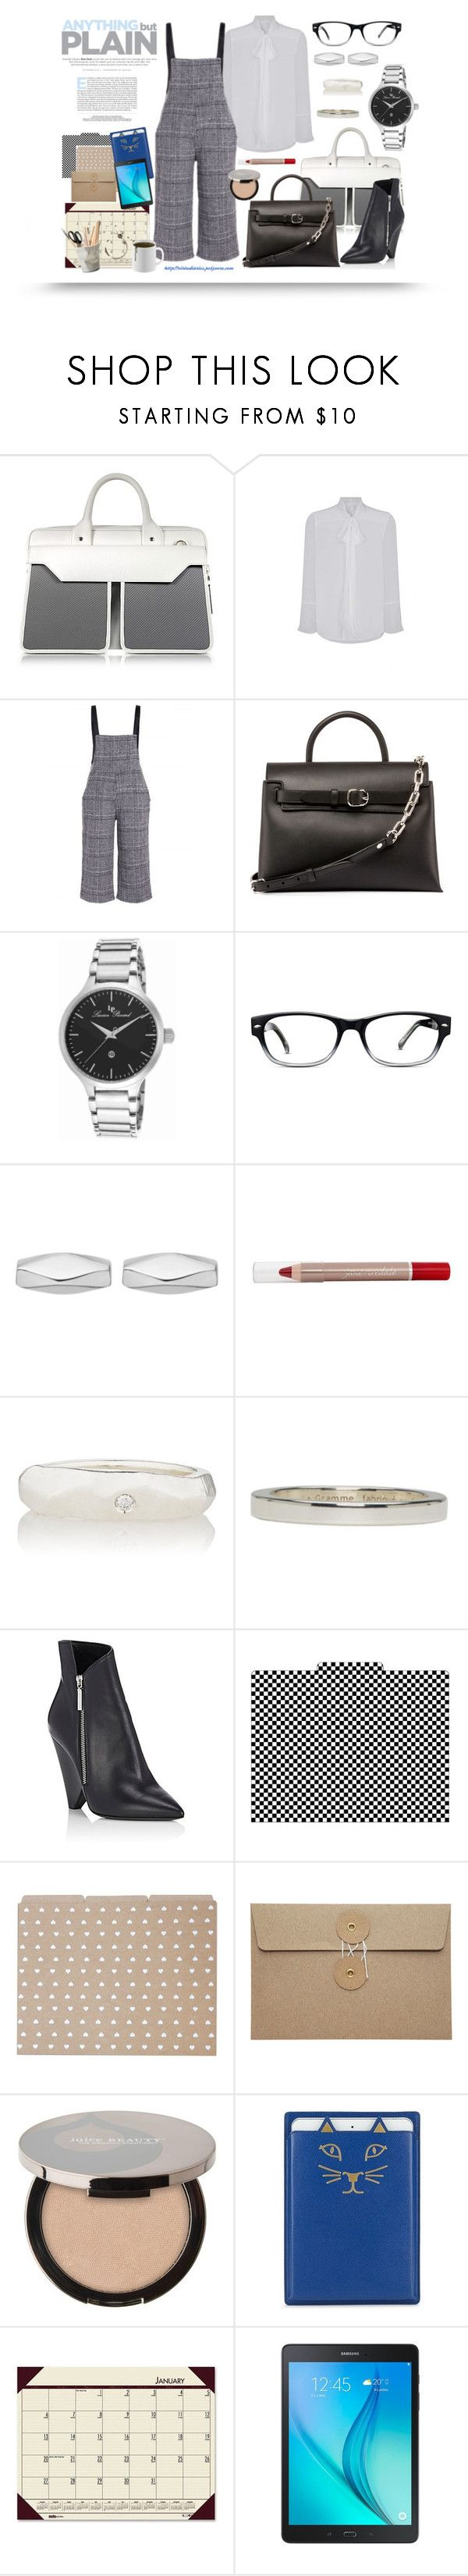 """""""Workin' It - Plus Size"""" by virtudiaries ❤ liked on Polyvore featuring Aznom, Alexander Wang, Lucien Piccard, GlassesUSA, Astley Clarke, Ali Grace, Le Gramme, Barker Creek, The Pink Orange and Juice Beauty"""